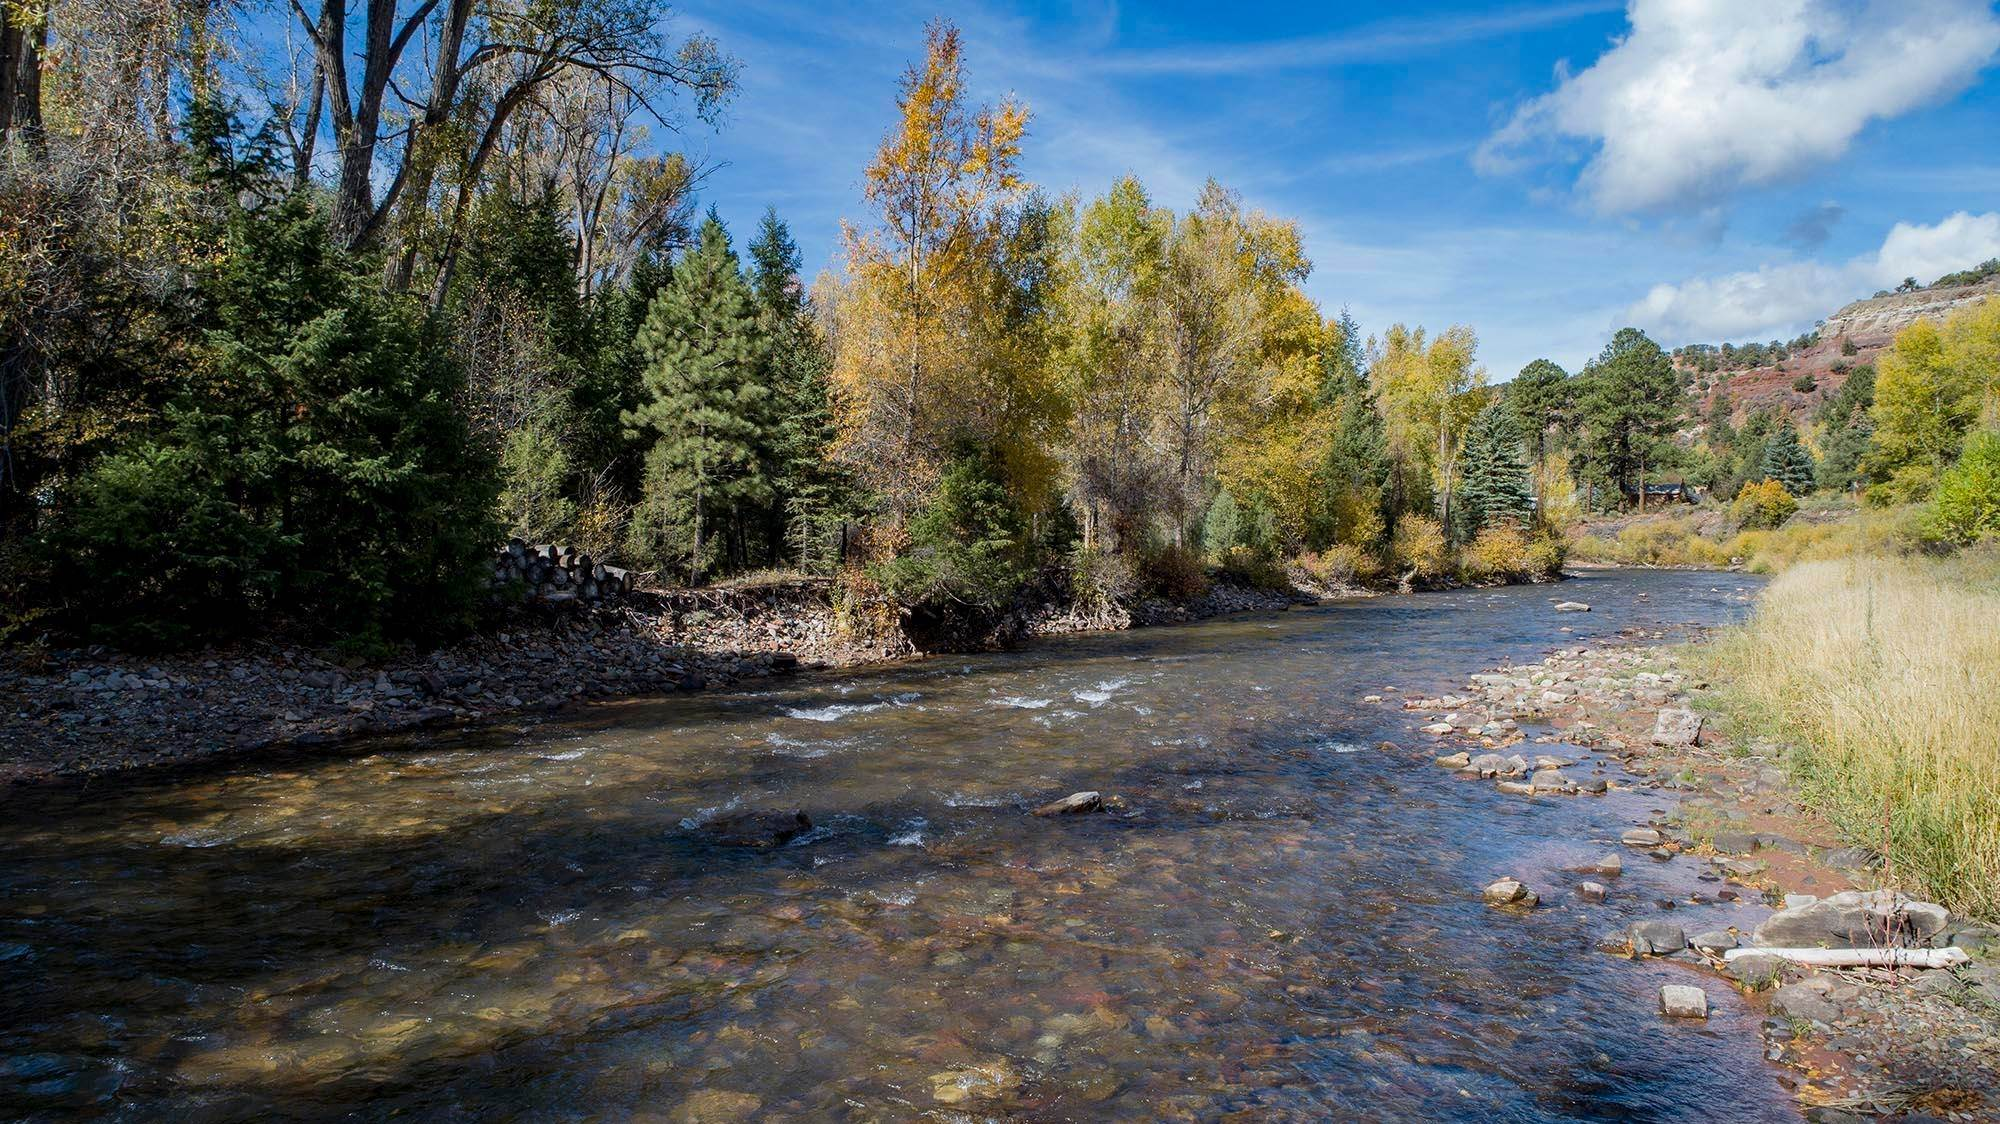 Land/Lot for Sale at 143A Stock Road Placerville, Colorado,81430 United States